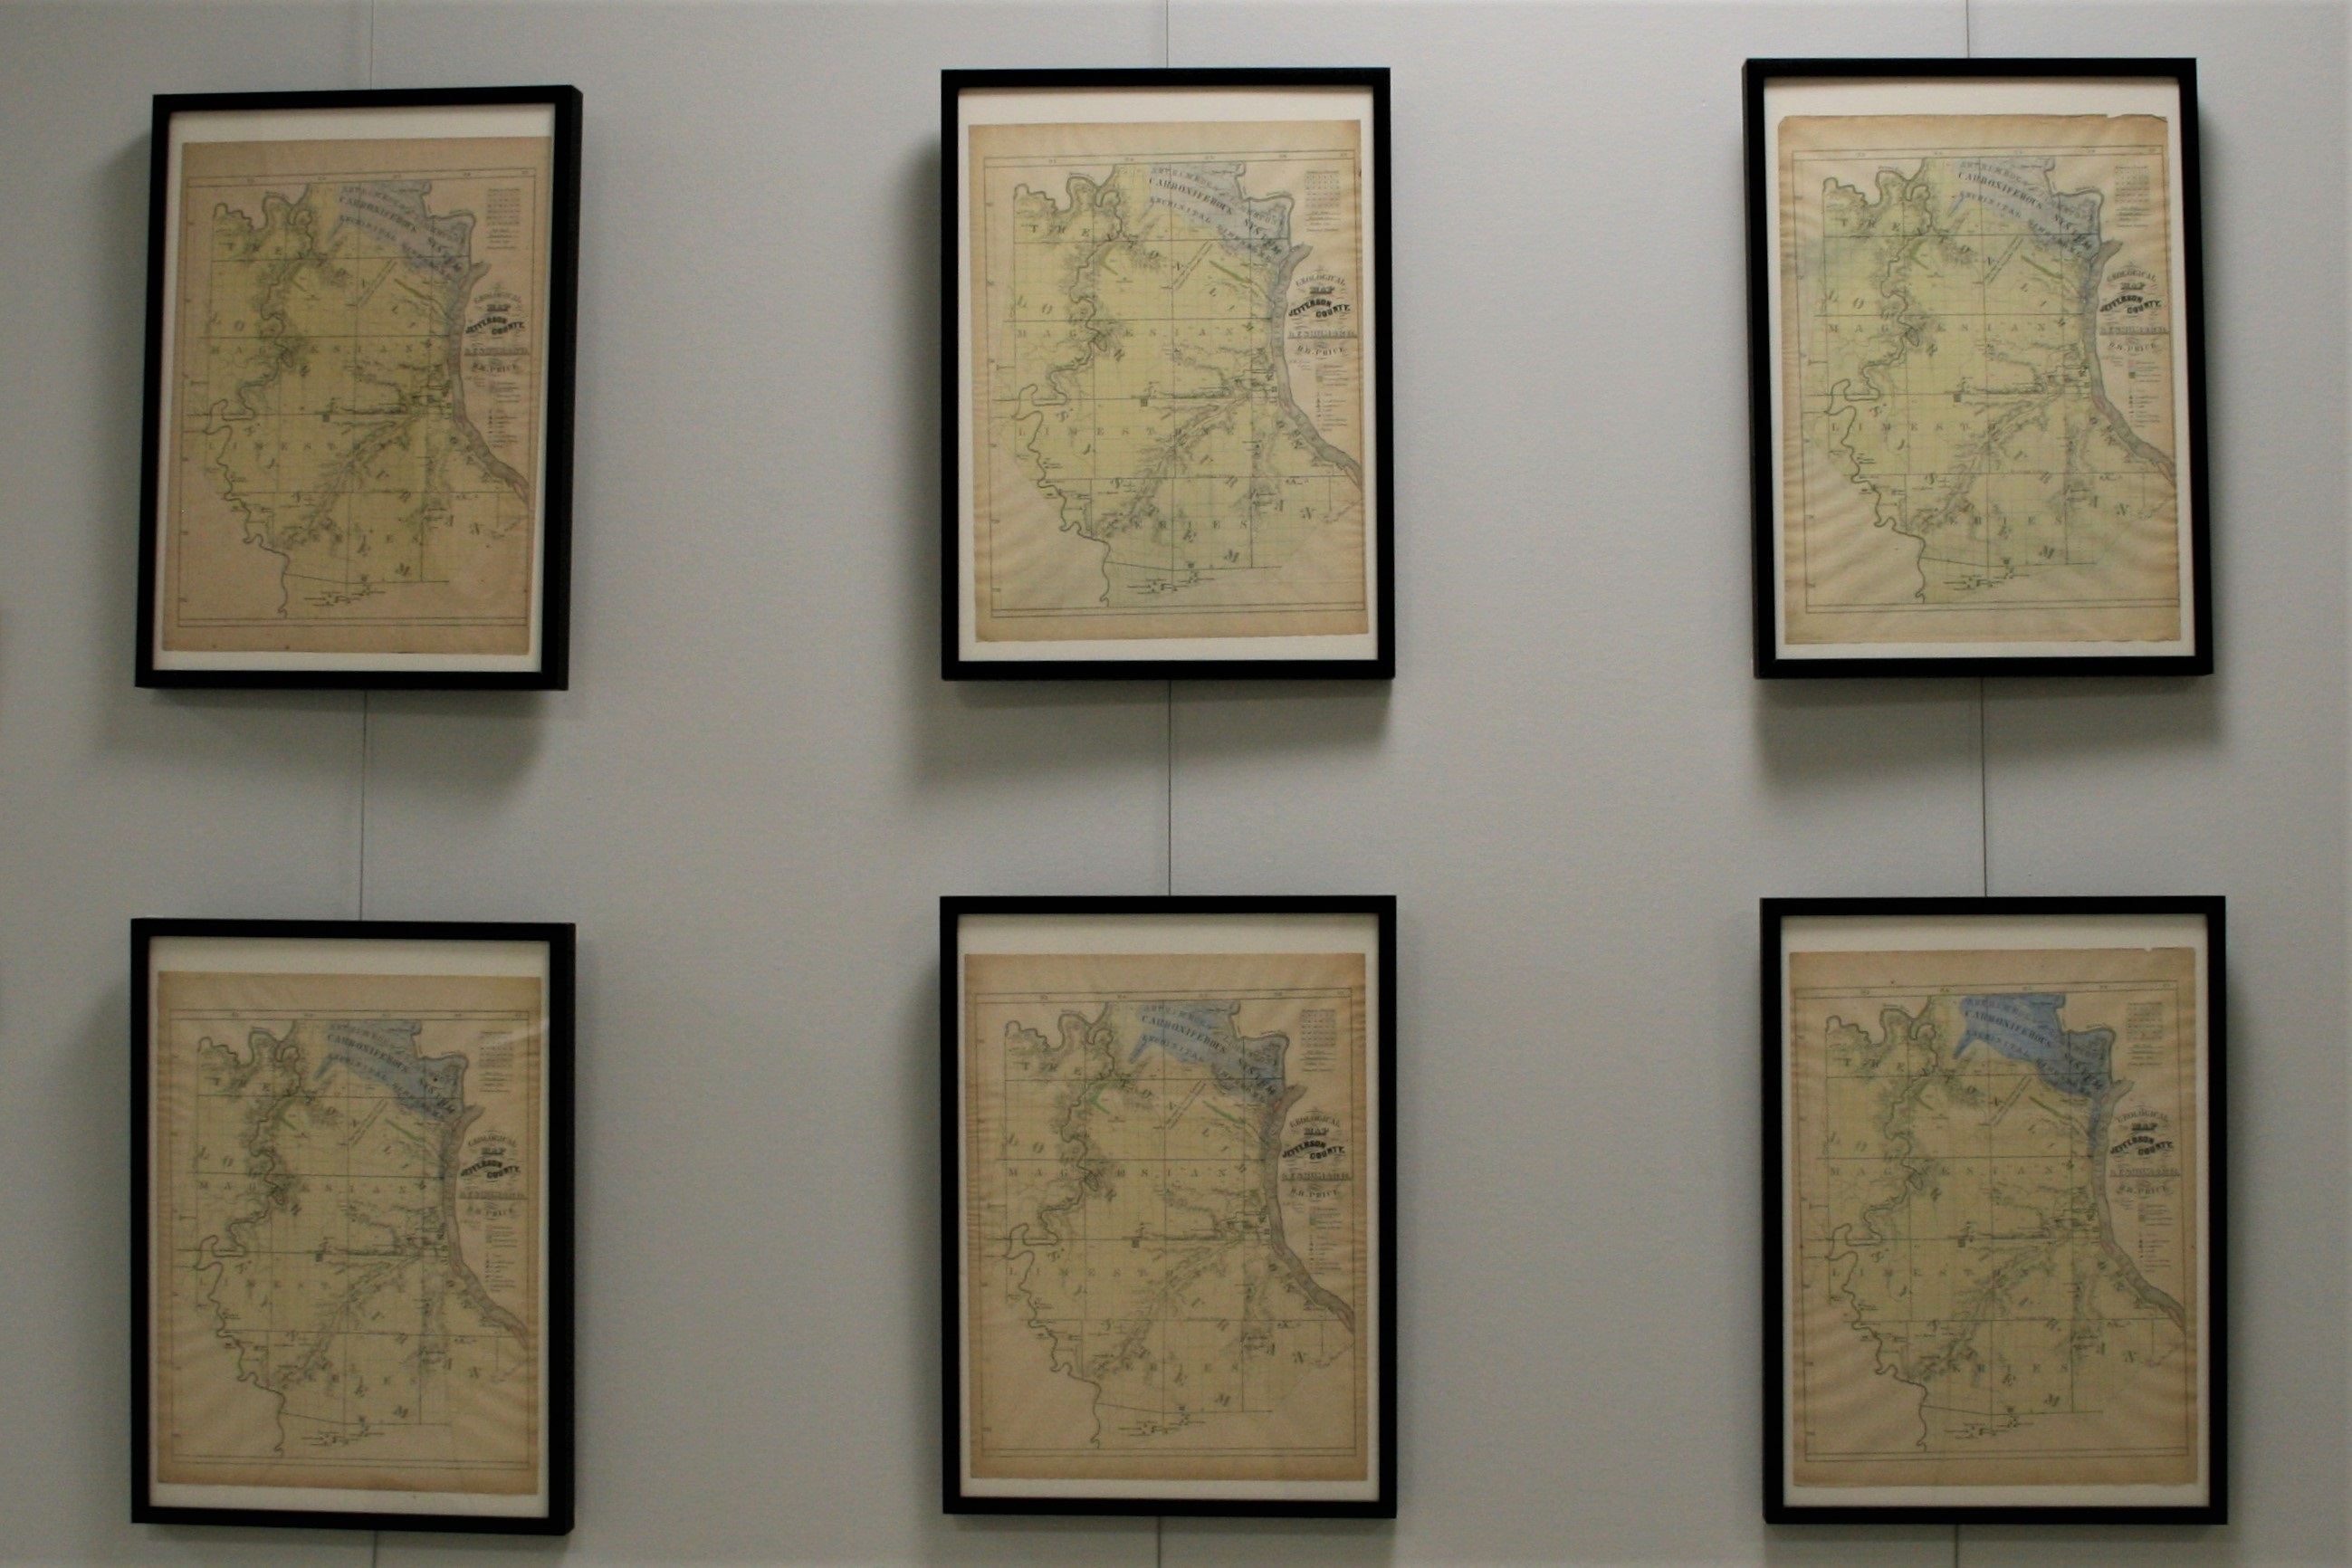 Image of six framed geologic maps of missouri from 1876